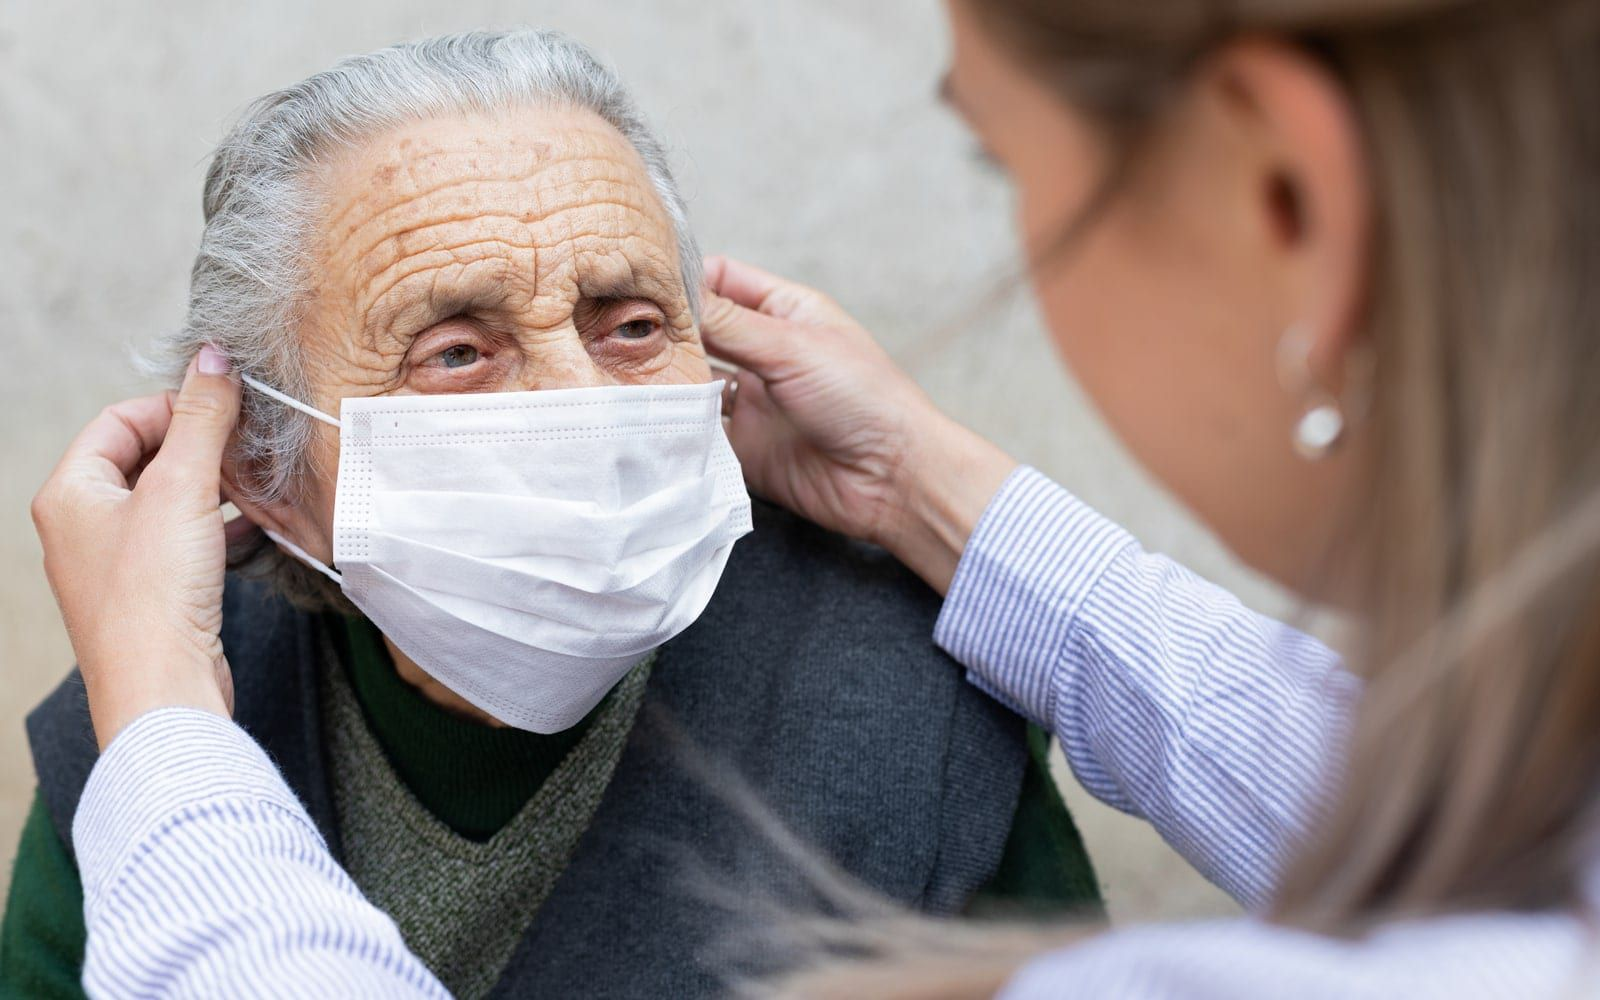 Doctor helping patient with mask